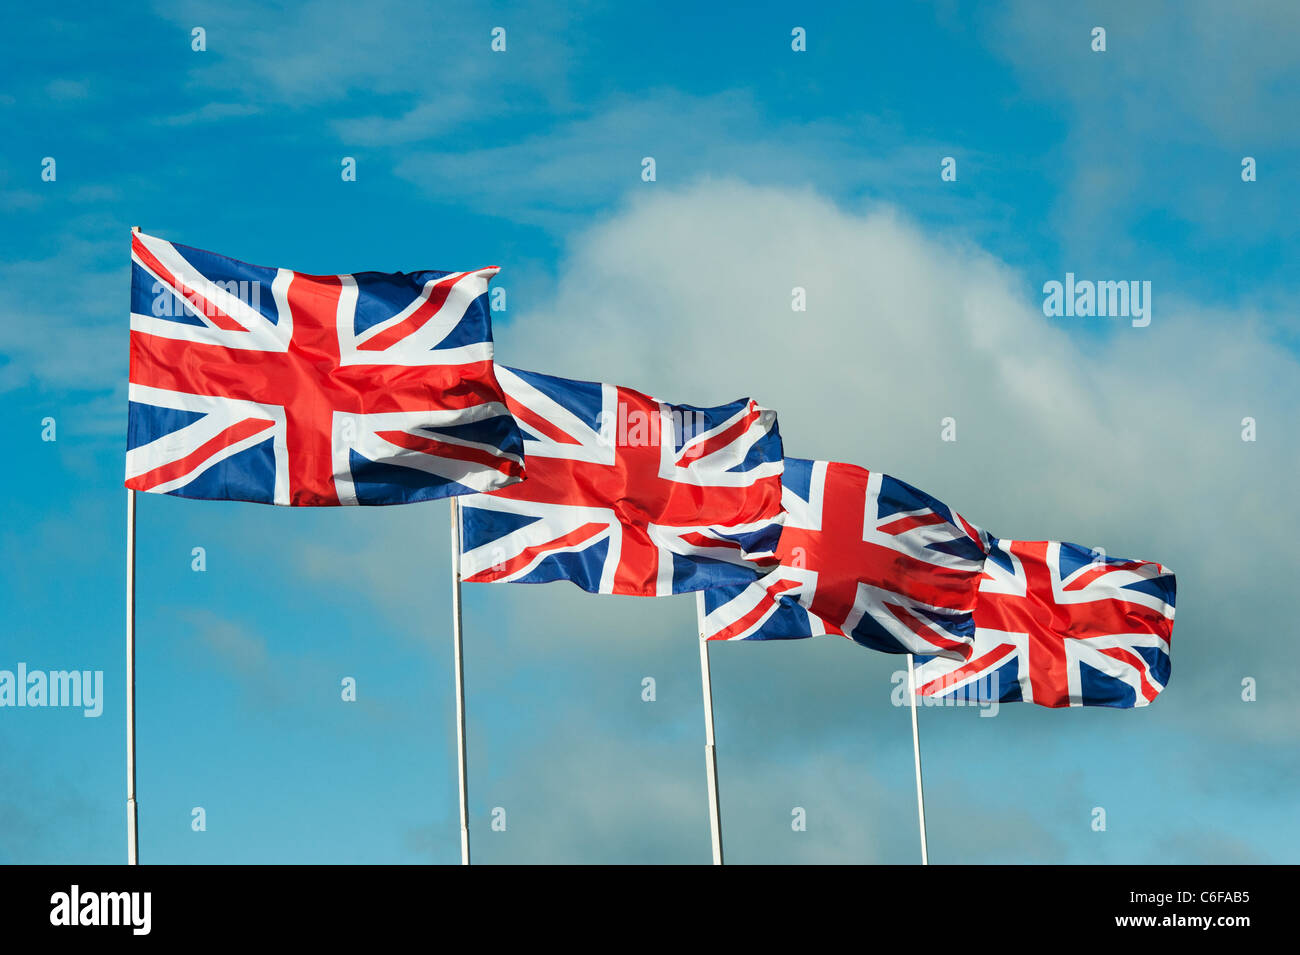 Four Union Jack flags flapping in the wind against a blue sky Stock Photo